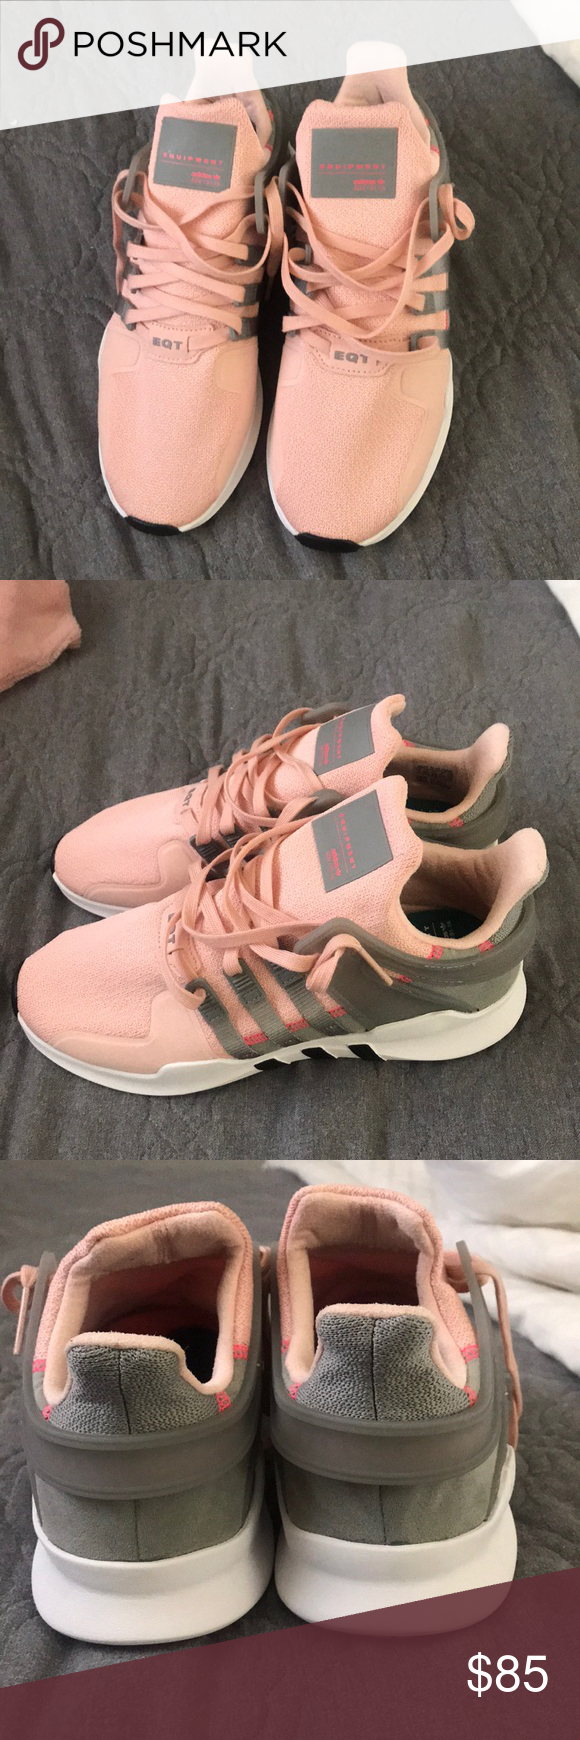 sports shoes 8f97e 719b0 Adidas EQT Support ADV Girls grade school vapor pinkgray these are new  only tried on they are size 7 in big girl size and fit women 8 no box.